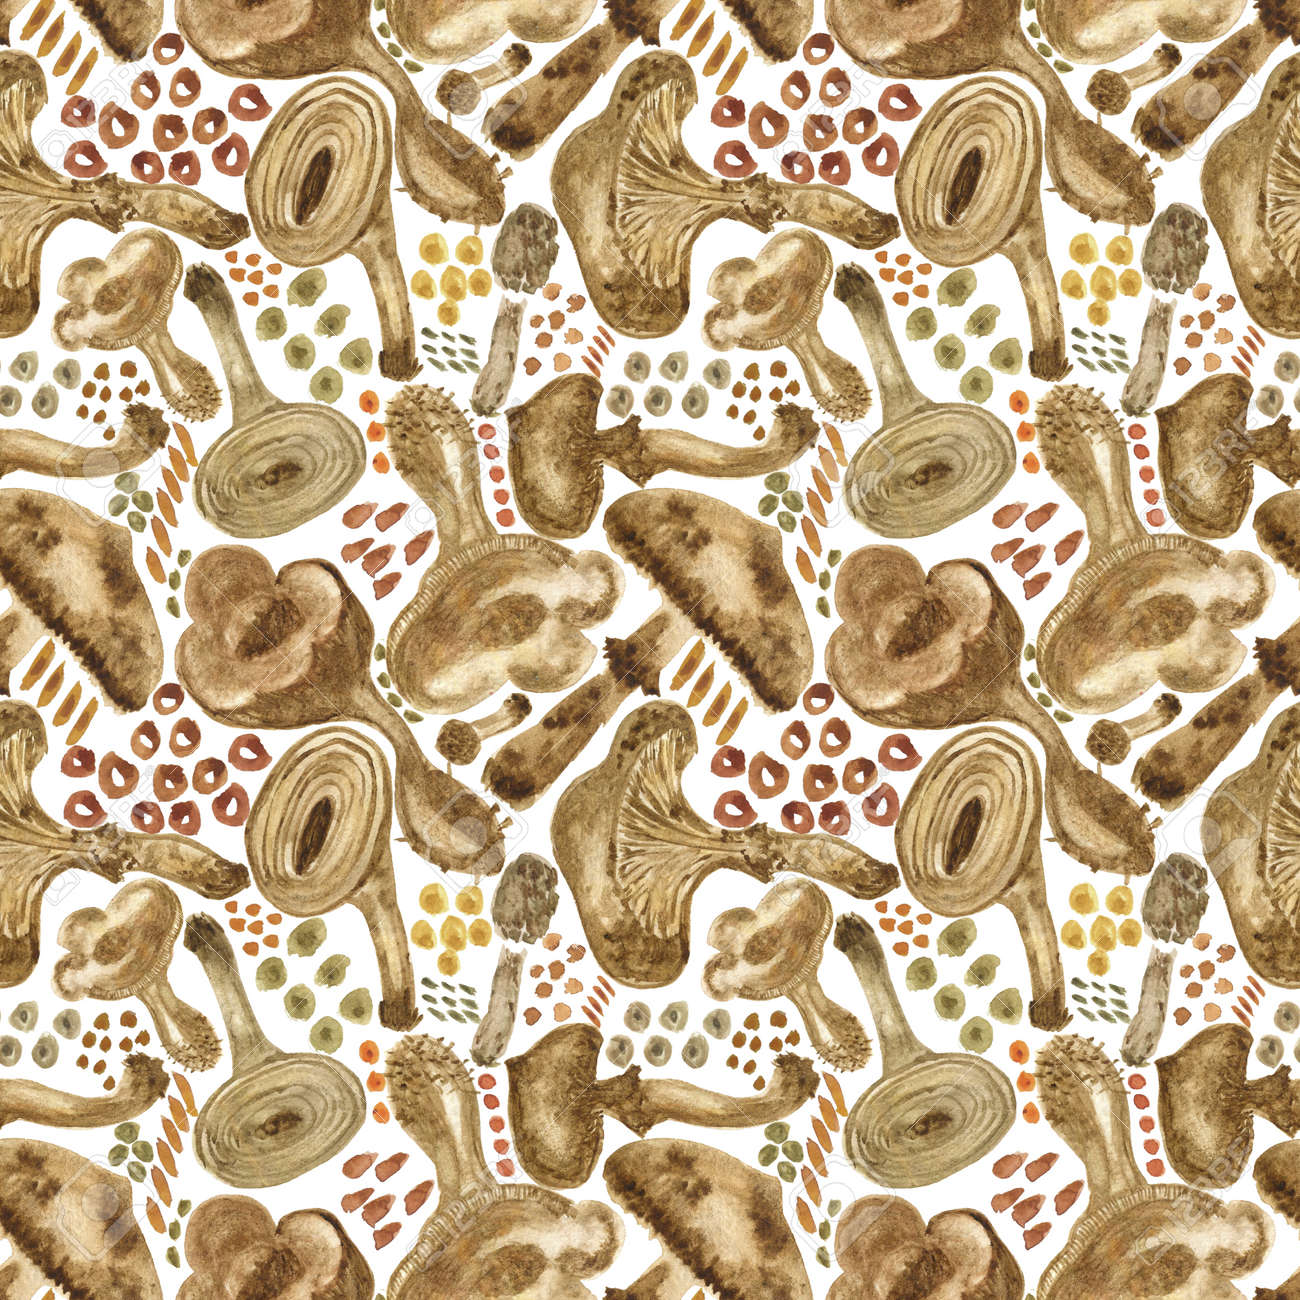 Seamless watercolor background with mushrooms. Pattern for creating fabrics, wallpapers, gift wrapping paper, invitations, textile, scrapbooking. Isolated on white background. - 164949481